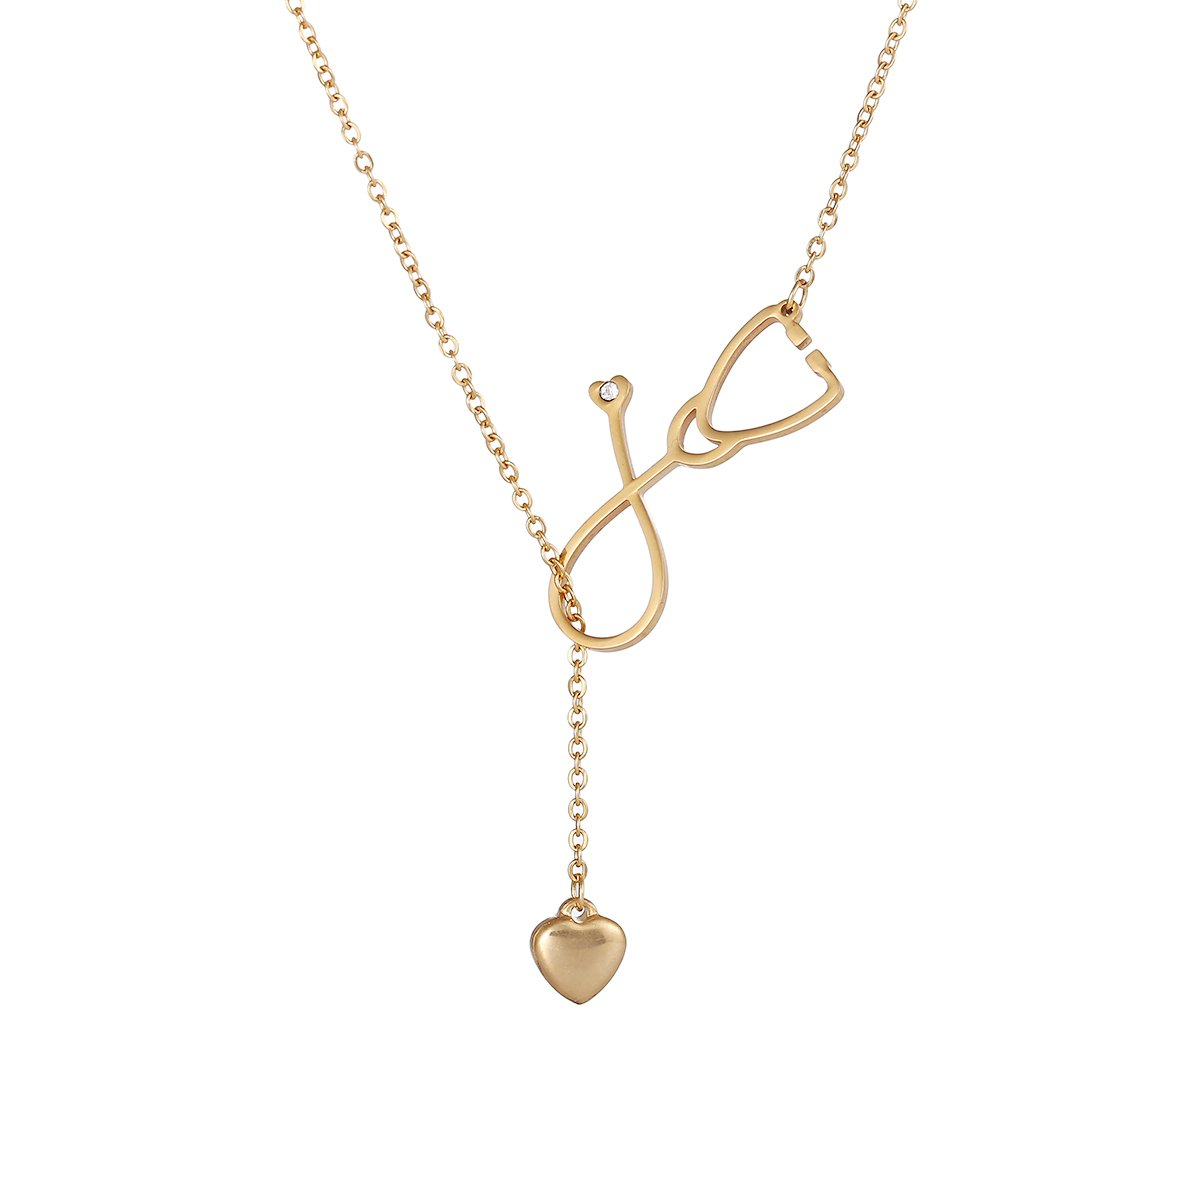 FOXJWEL Stainless Steel Stethoscope EKG Heartbeat Lariat Necklace for Doctor Nurse Medical Student Graduation Gift (Stethoscope Gold)